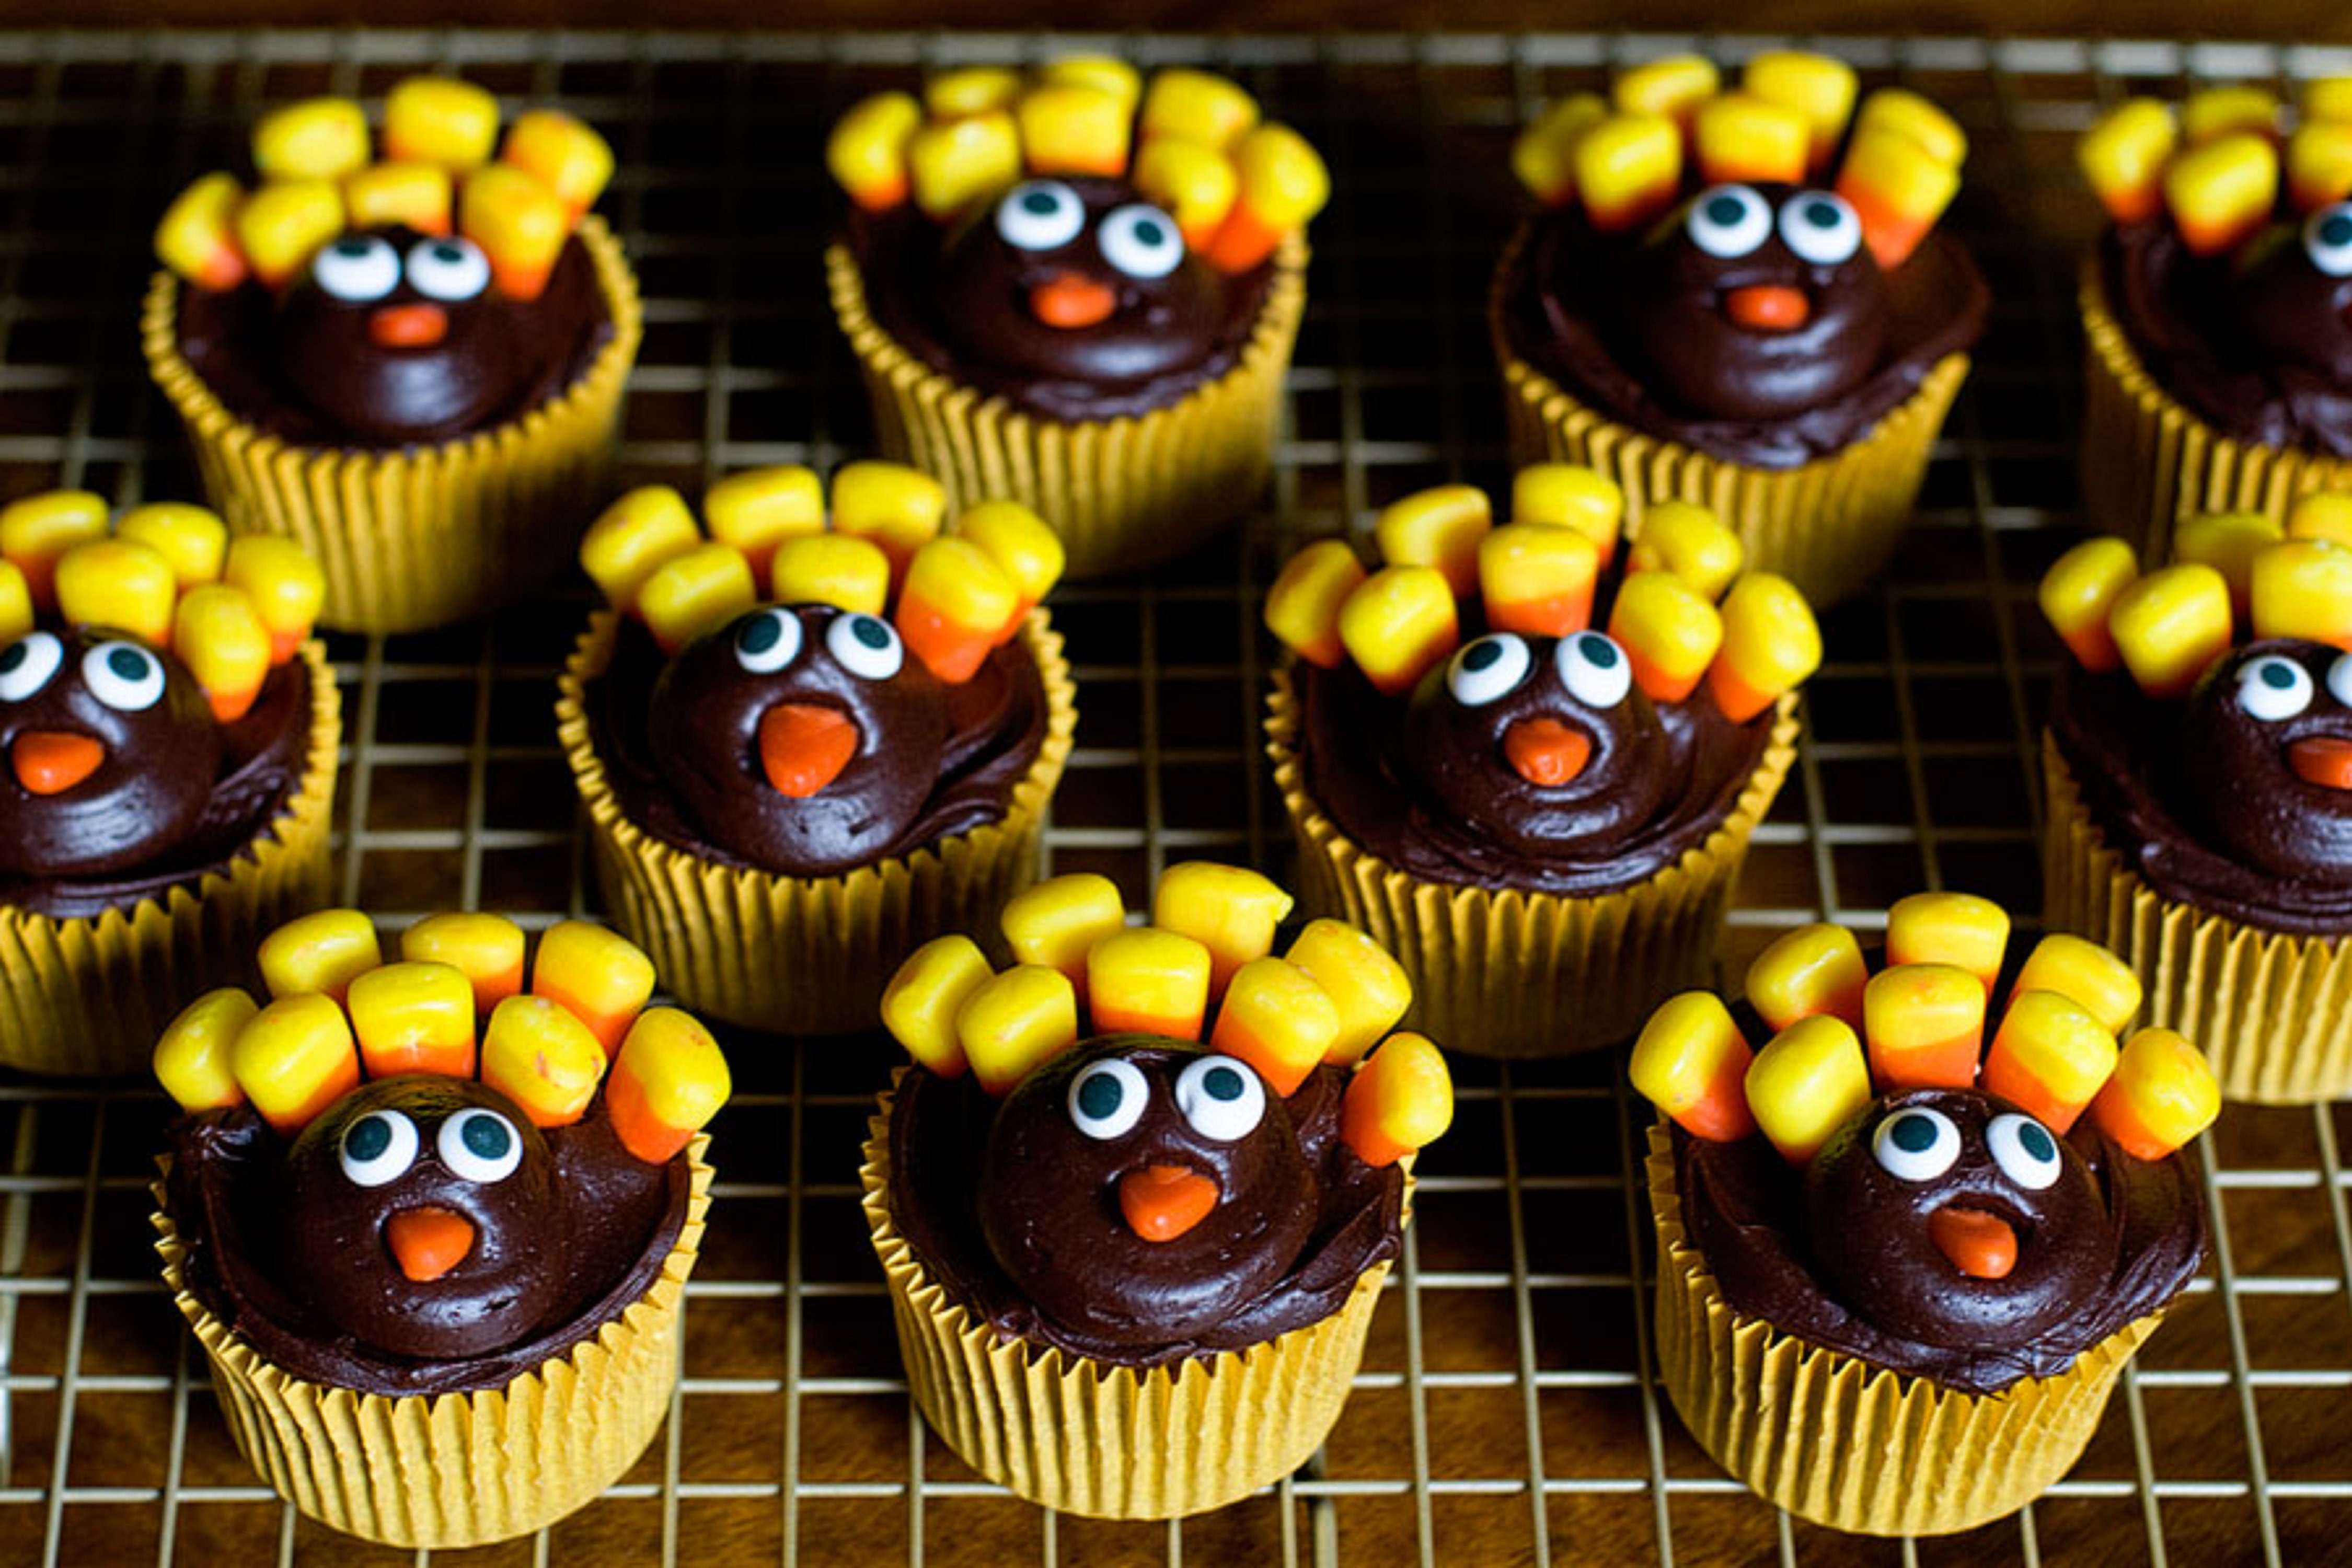 Thanksgiving Cupcakes Decorating Ideas  11 Awesome Cupcake Decorating Ideas